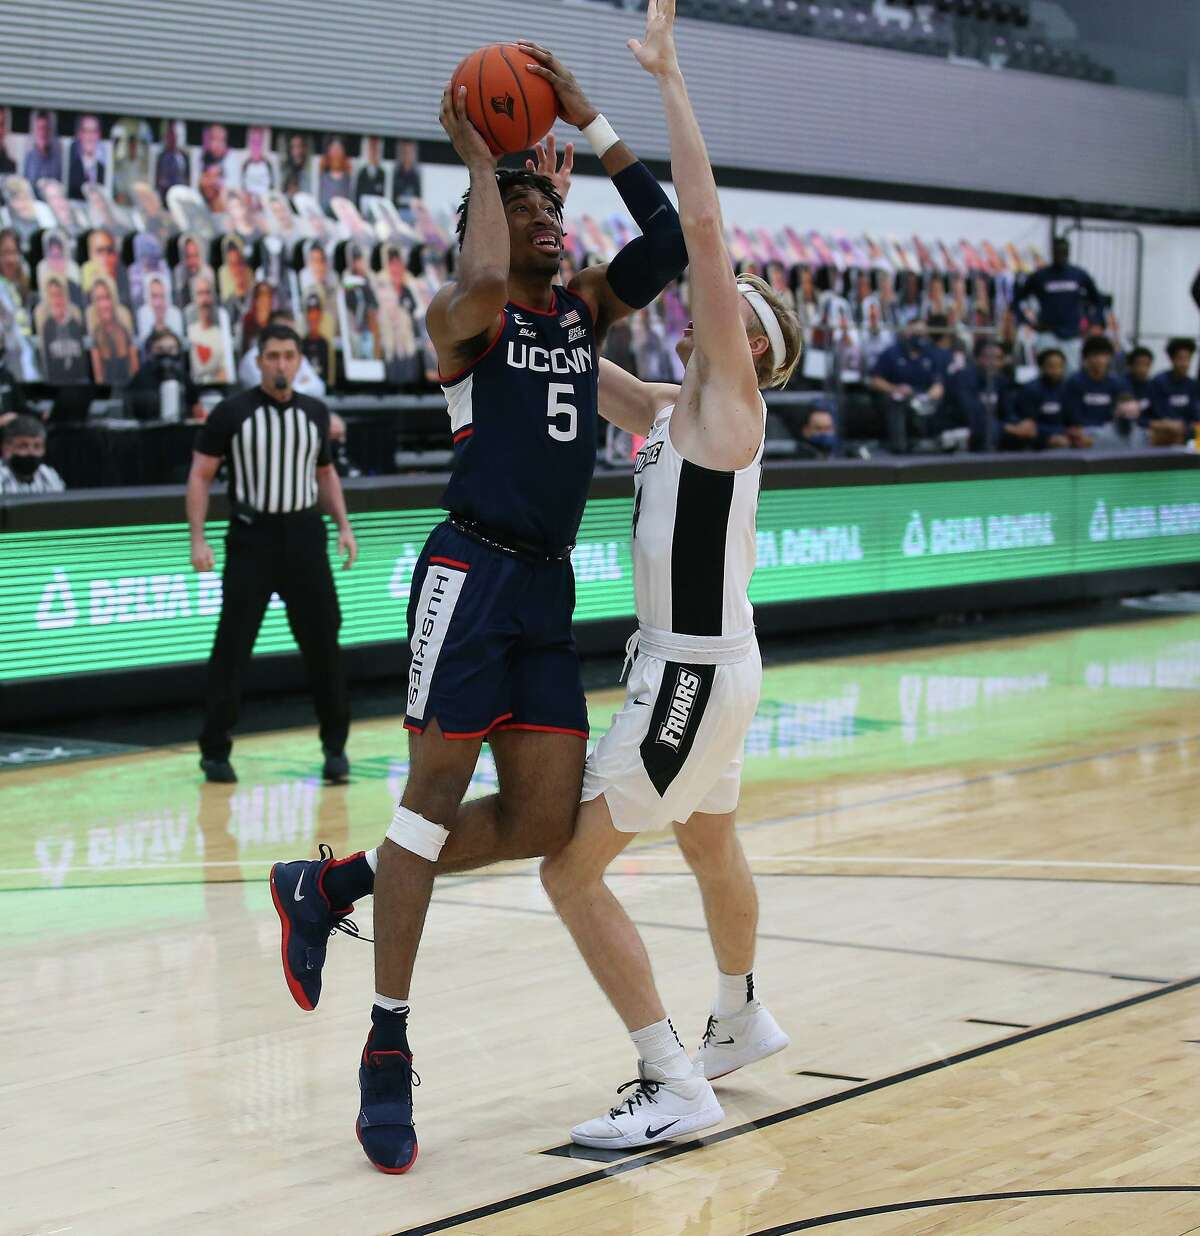 UConn's Isaiah Whaley (5) goes up for a shot while defended by Providence's Noah Horchler (14) on Wednesday. UConn at Providence in an NCAA basketball game, Wednesday, Feb. 10, 2021, in Providence, RI. (Photo/Stew Milne)